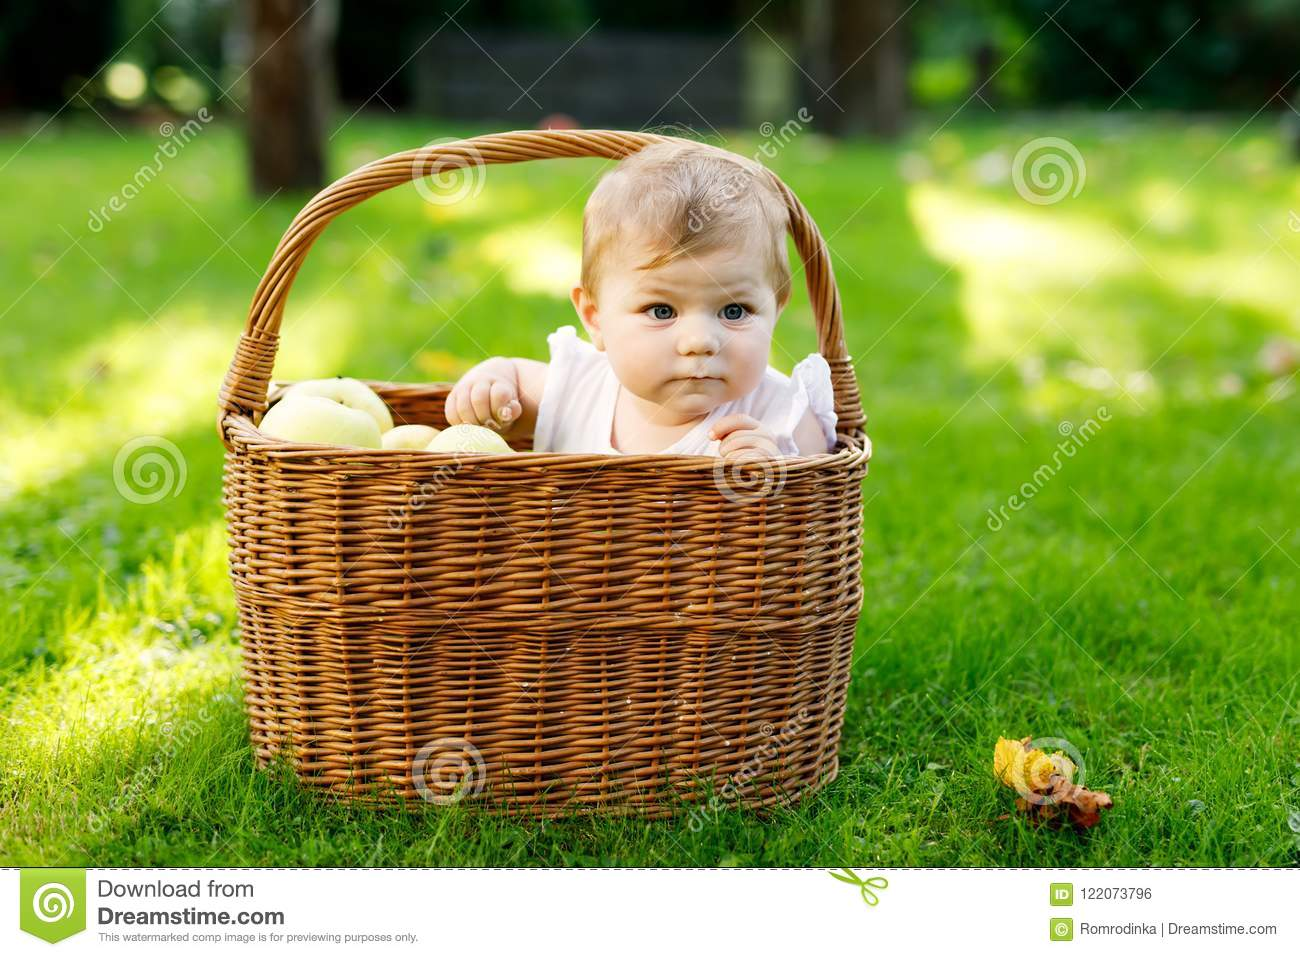 cute baby girl sitting in basket full with ripe apples on a farm in